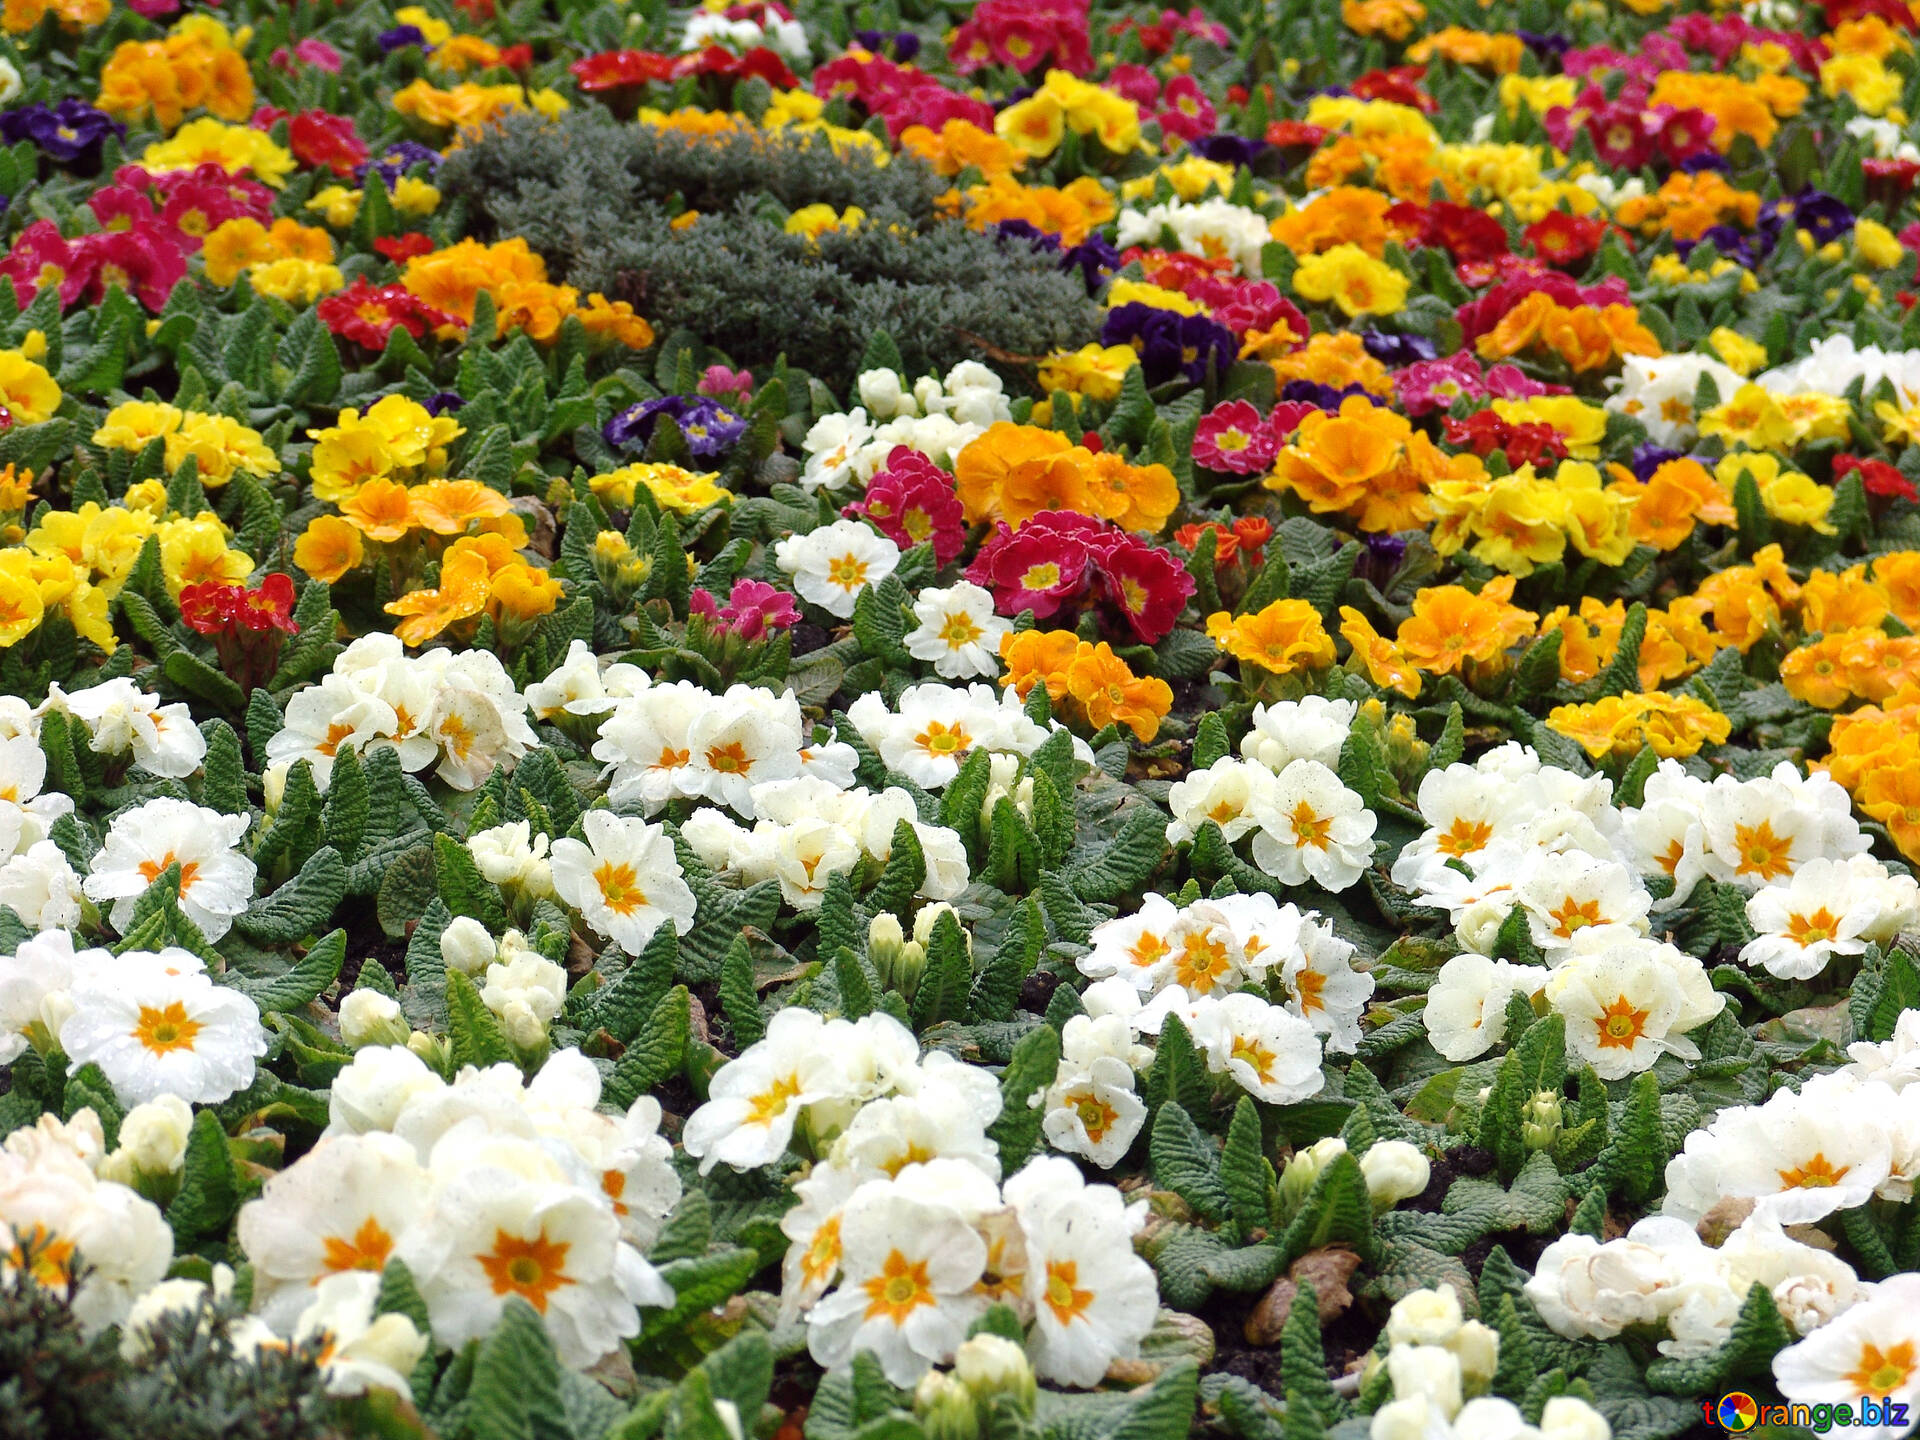 Flowers In The Flowerbed Yellow White Red Blue Flowers In The